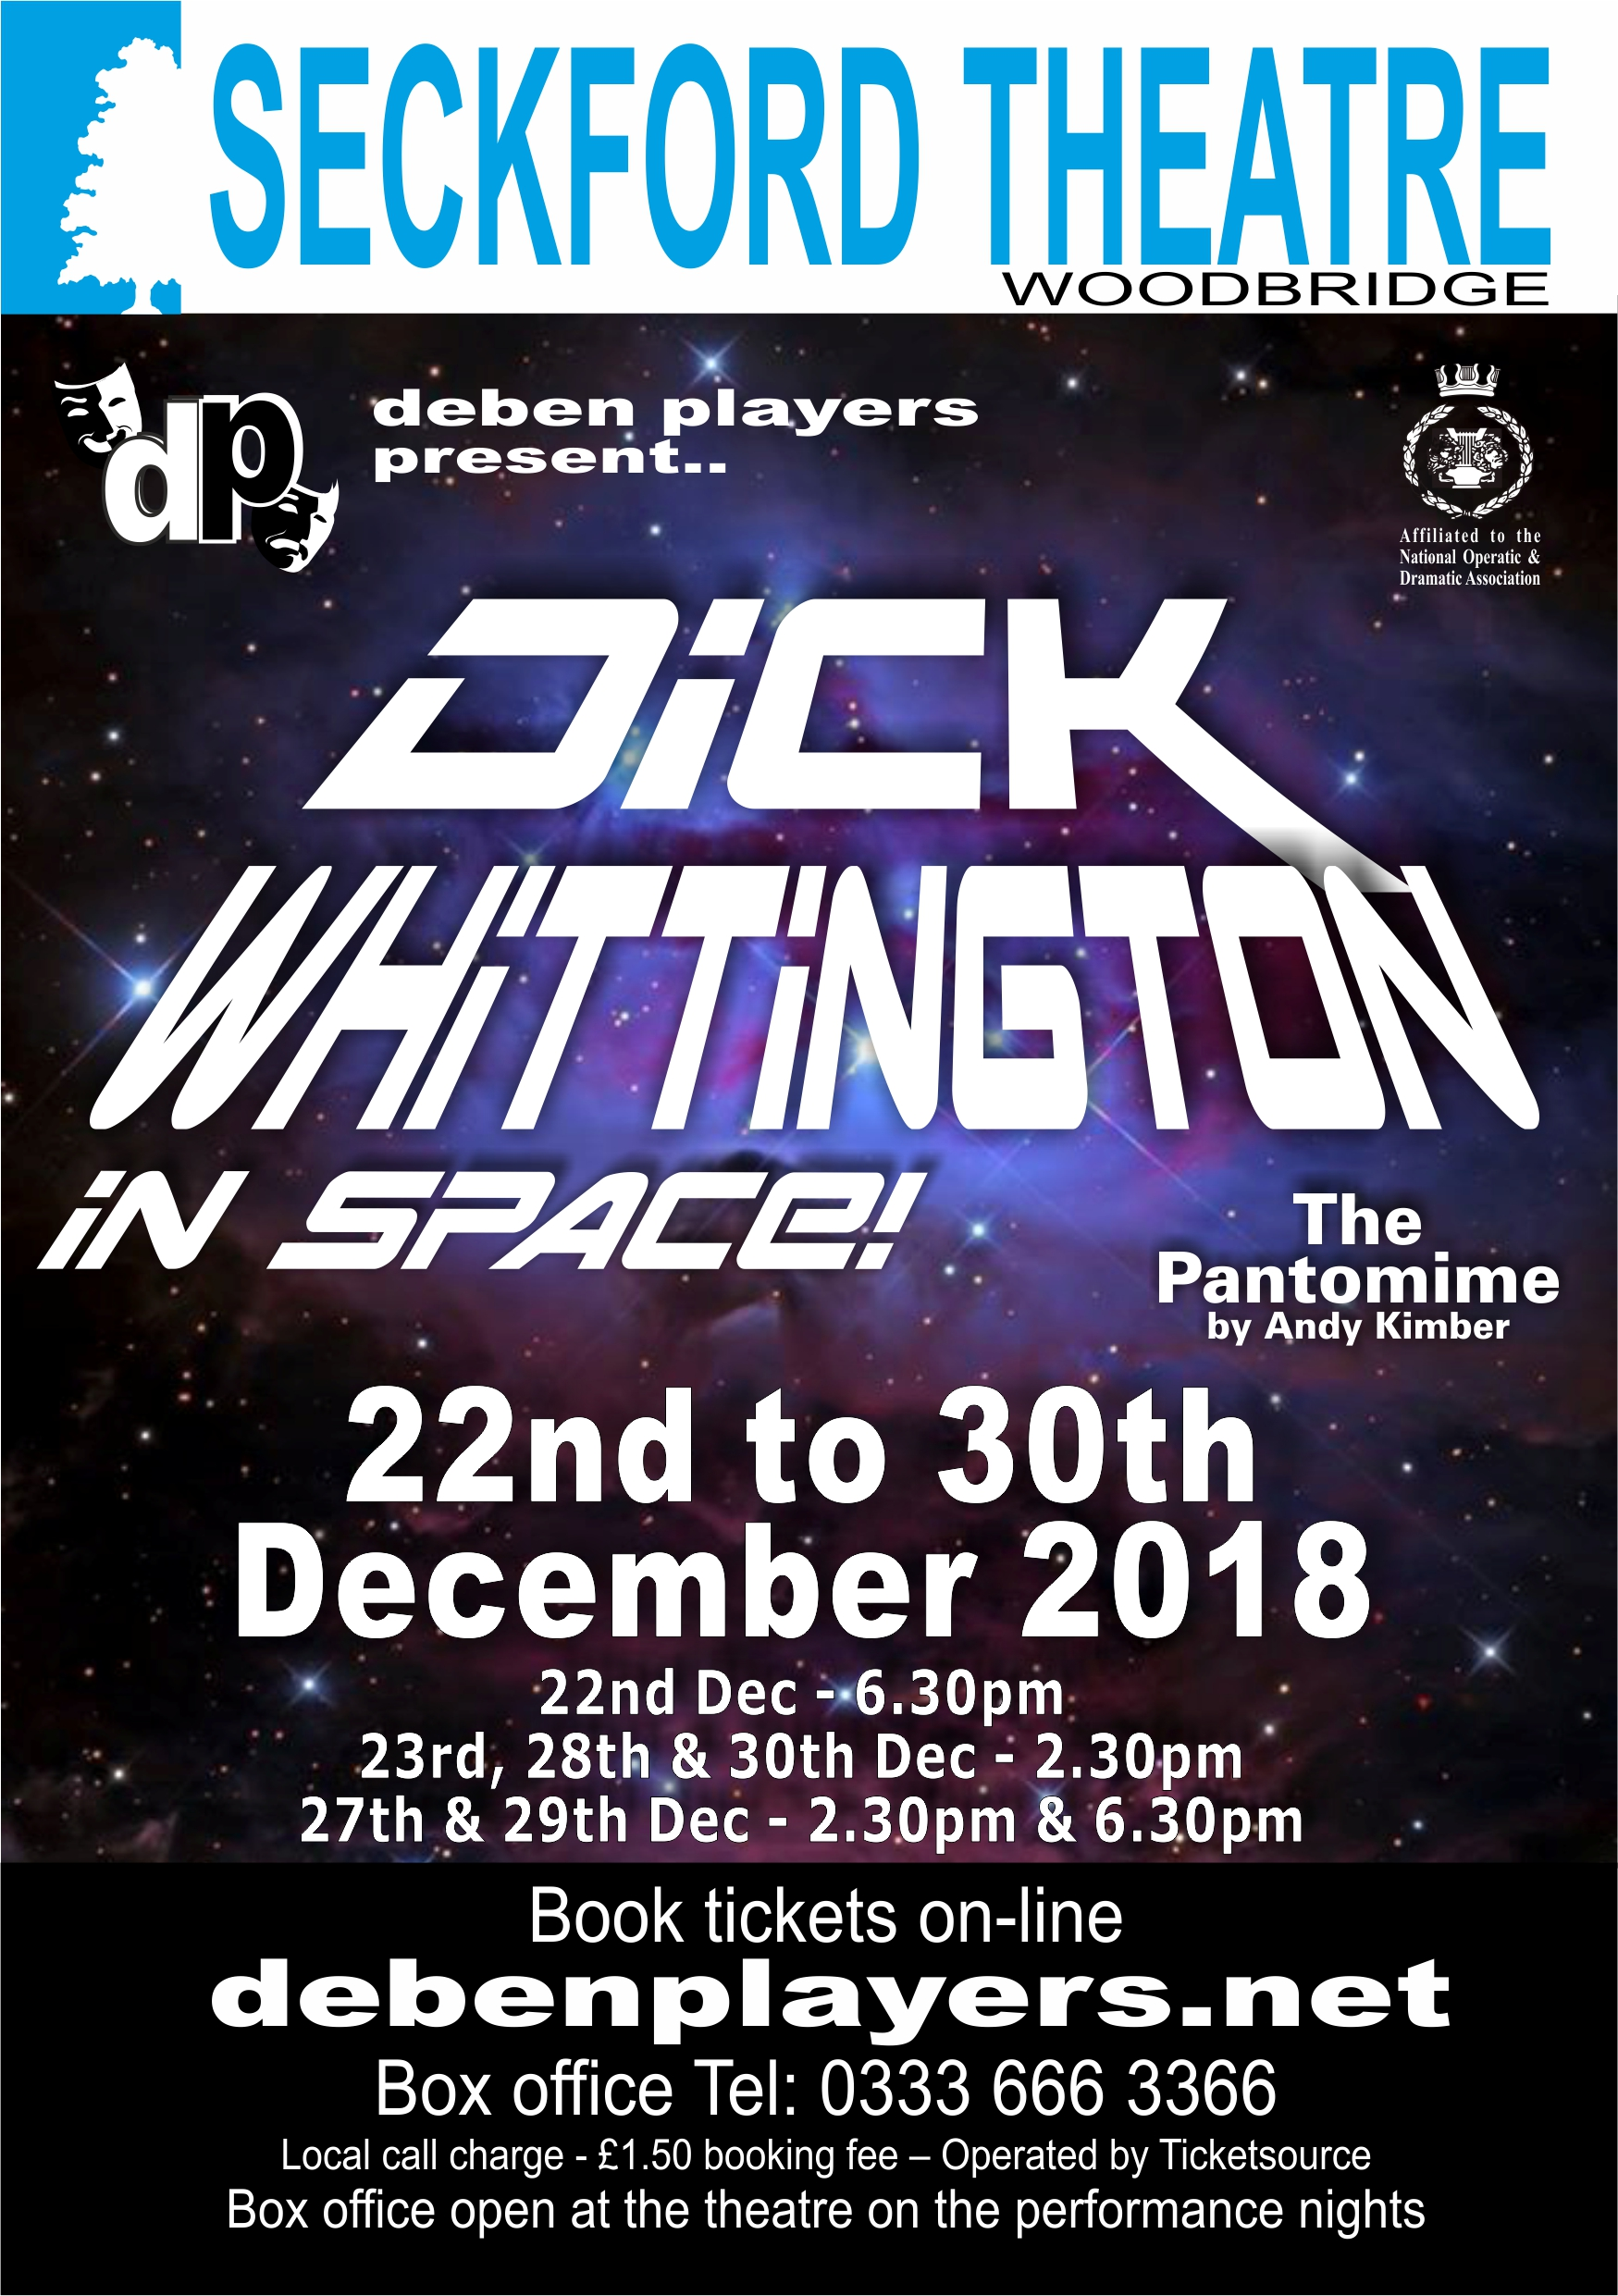 Dick Whittington In Space!